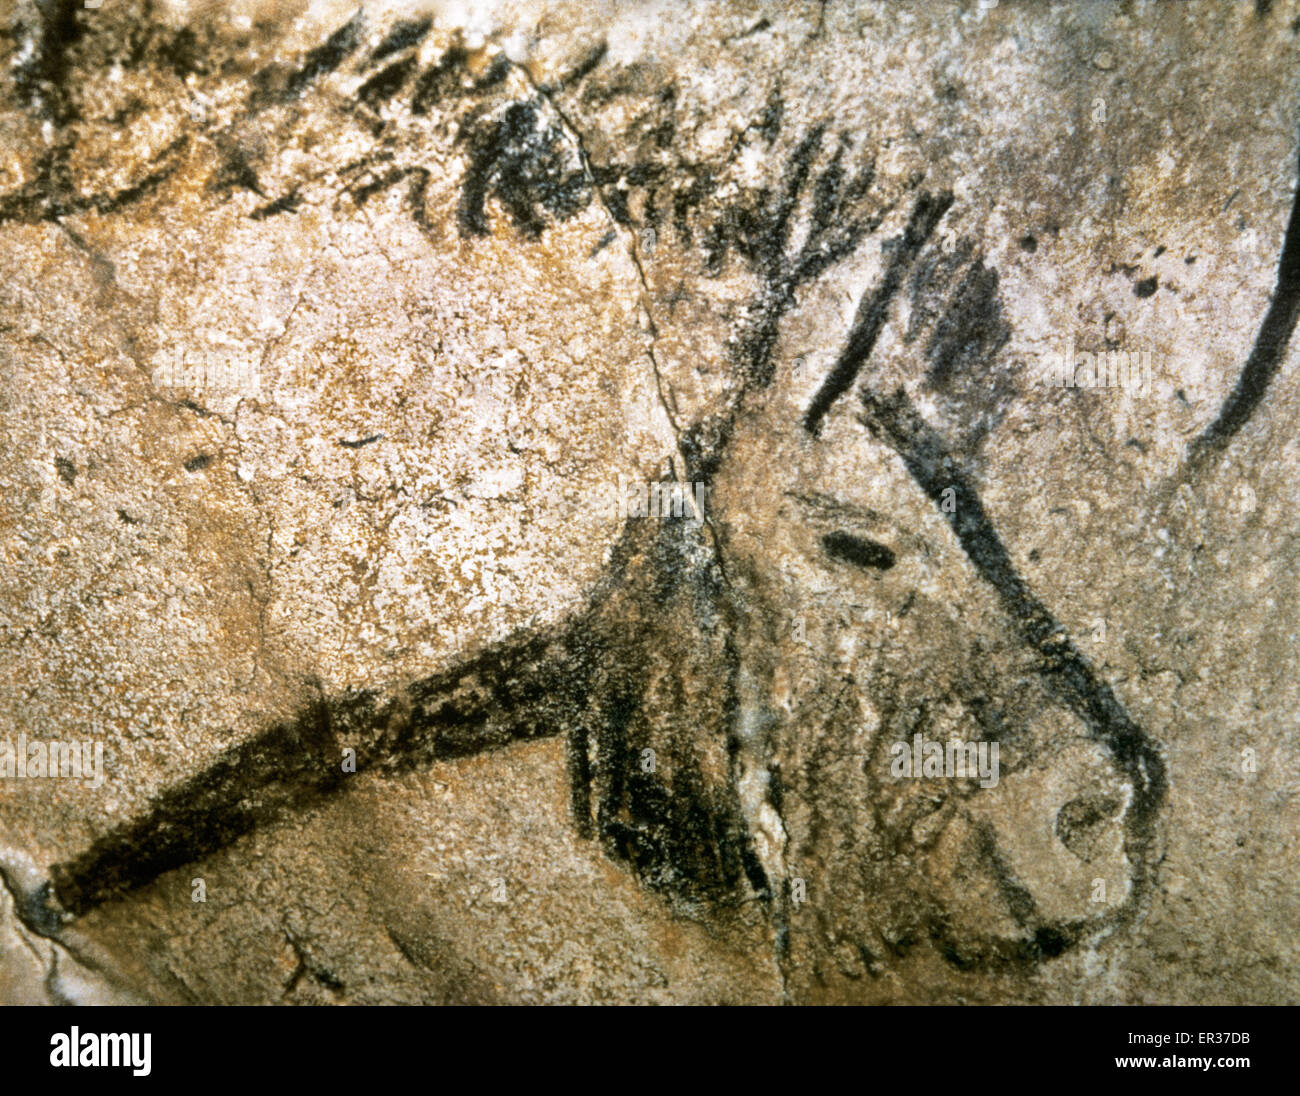 Cave of Niaux. Prehistoric painting. Magdalenian period. Upper Paleolithic. Horse head. France. - Stock Image